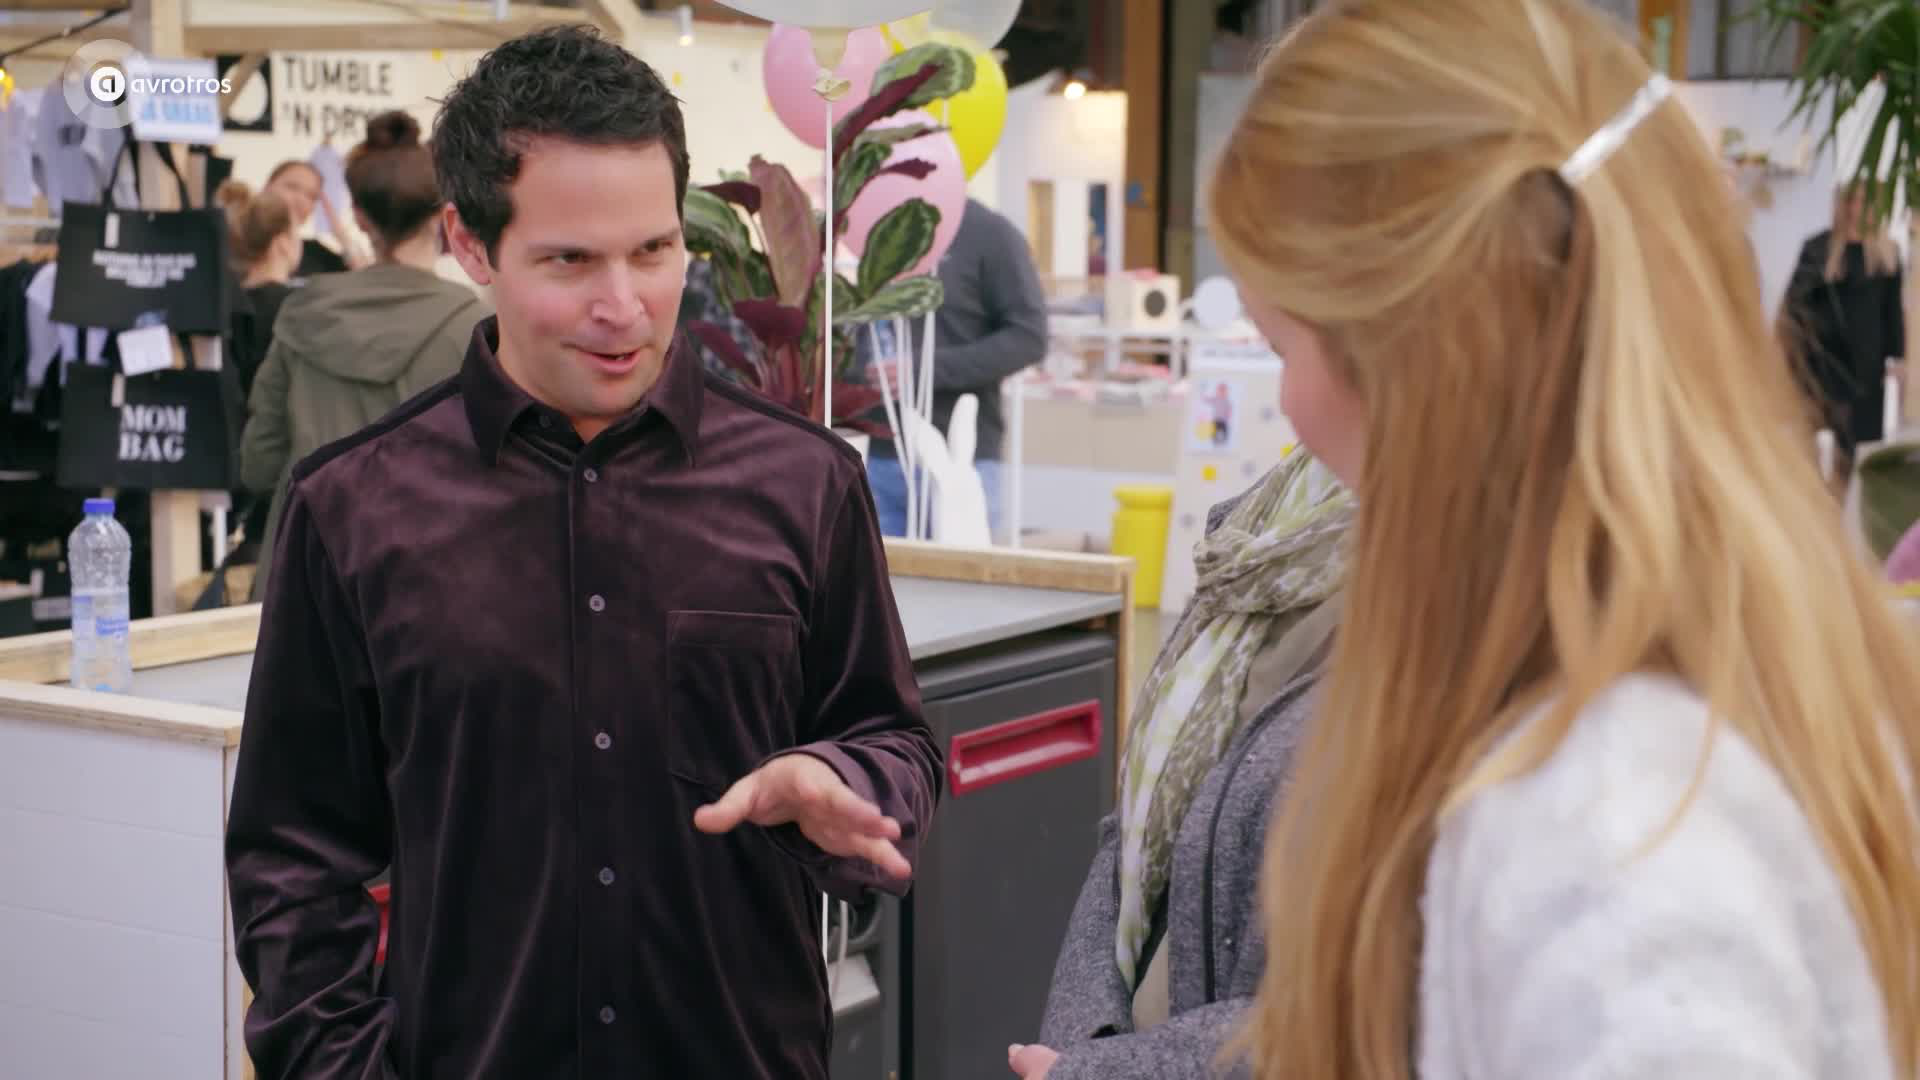 Curta rekenmachine dating